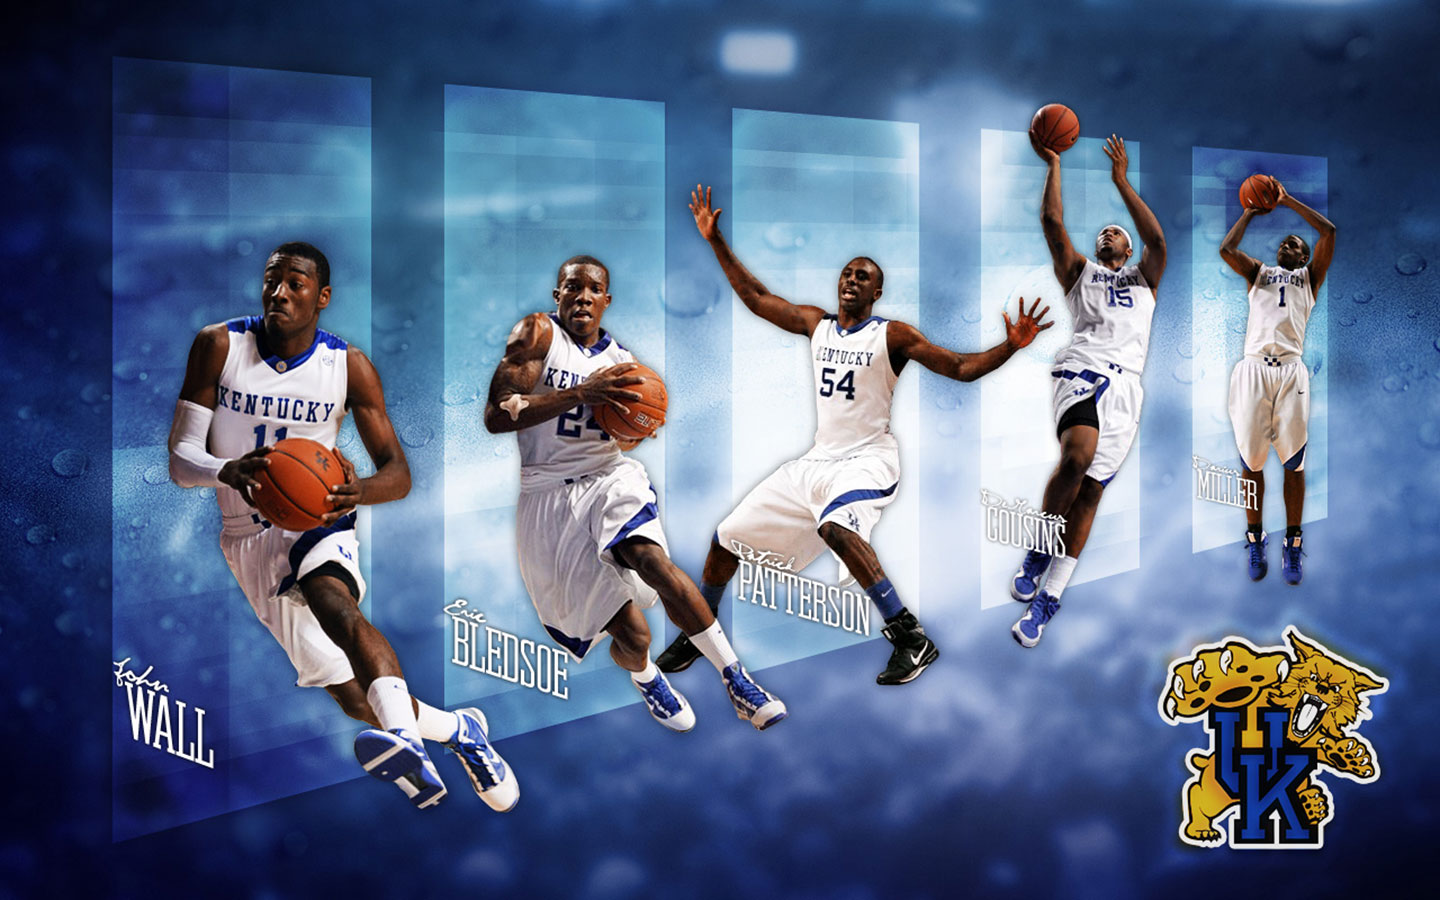 College Basketball Wallpaper: University Of Kentucky Desktop Wallpaper